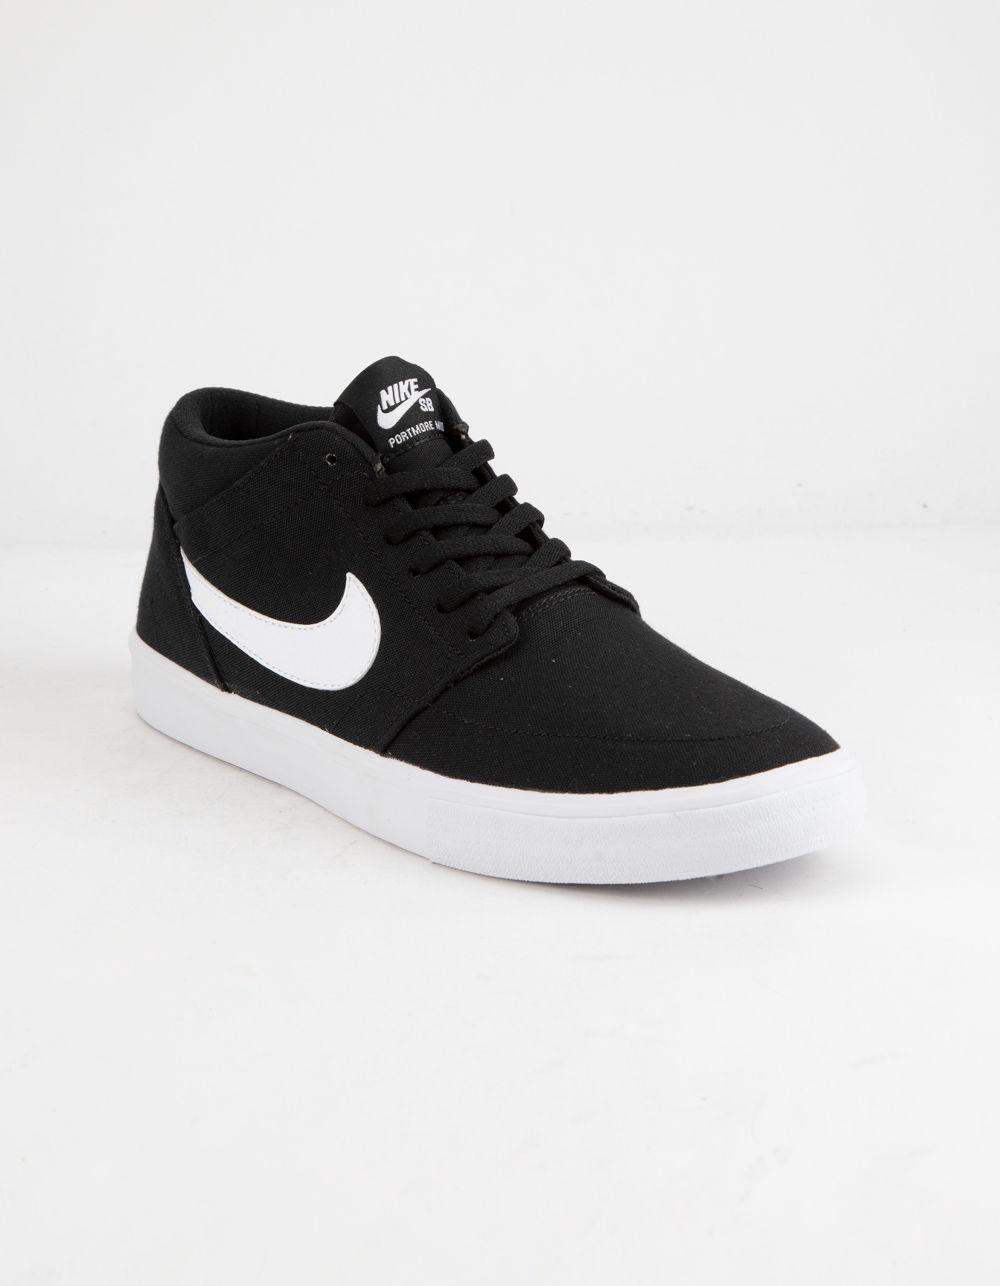 ddb83a51b934bc Lyst - Nike Portmore Ii Solarsoft Mid Canvas Black   White Shoes in Black  for Men